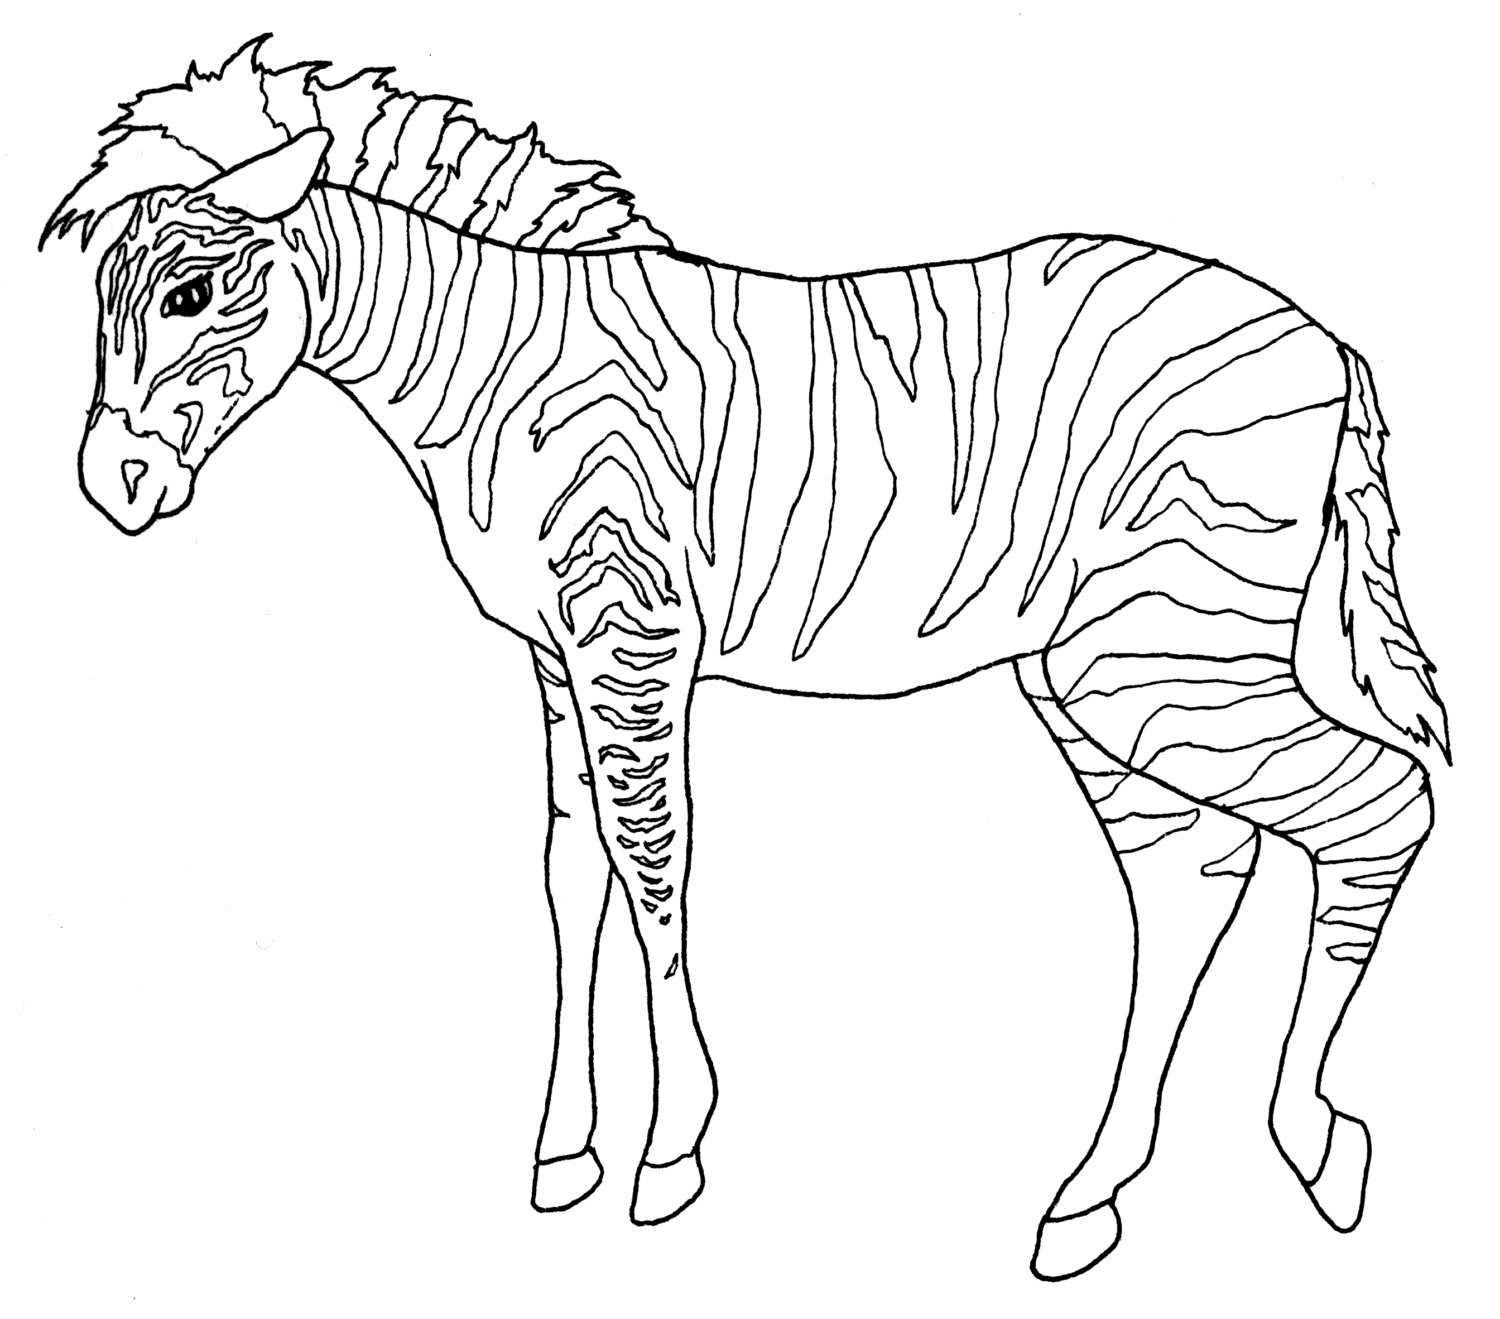 safari animal coloring pages jungle forest animals jungle forest adult coloring pages safari animal pages coloring